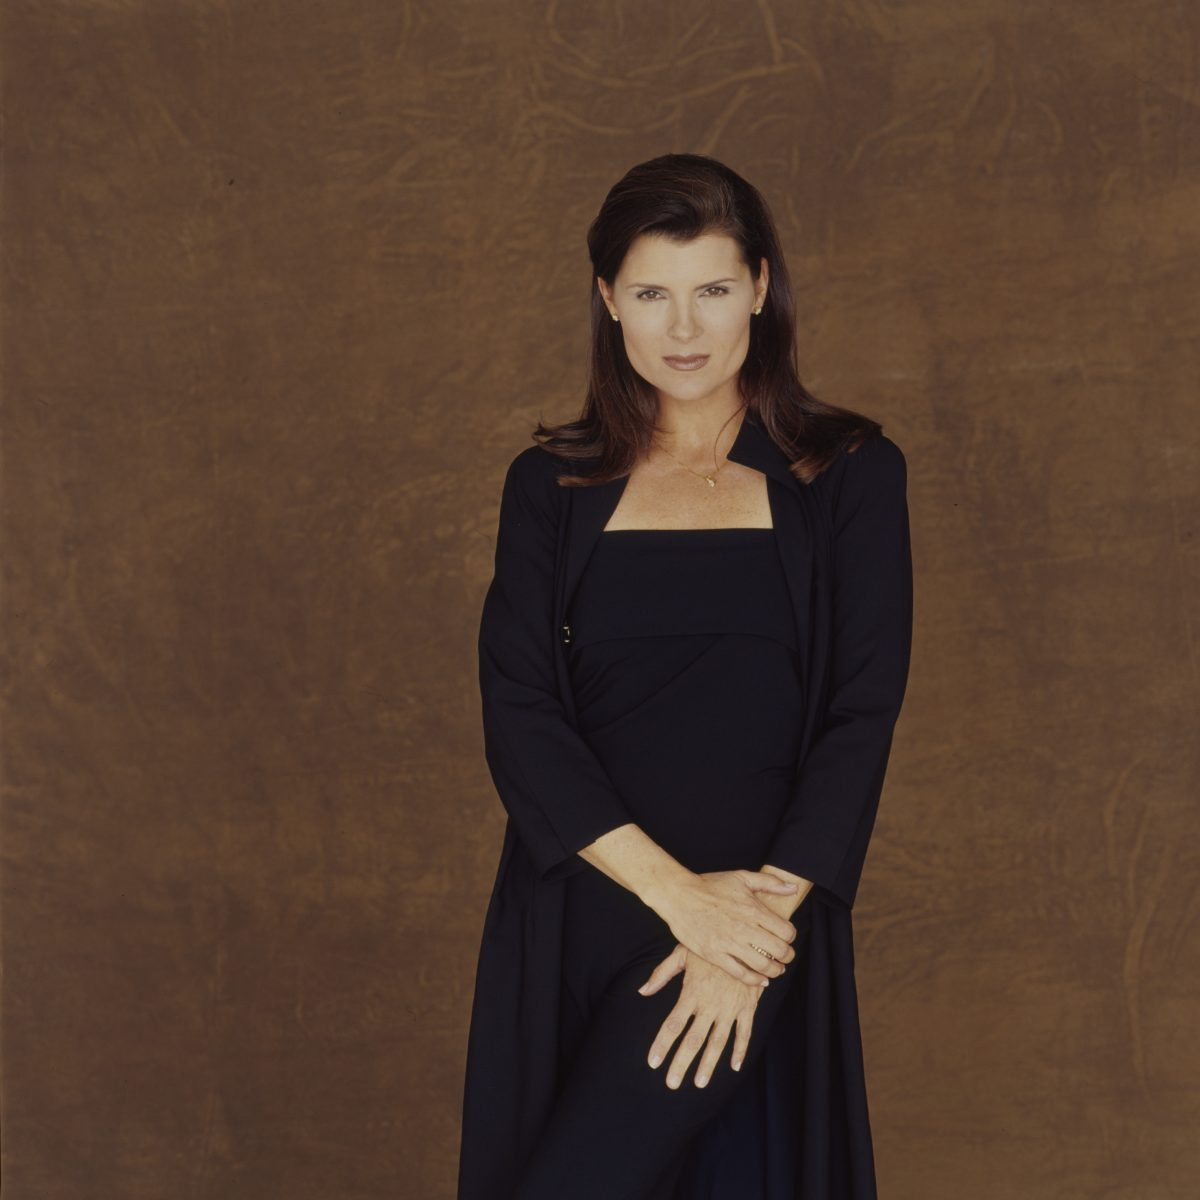 The Bold and the Beautiful spoilers focus on Sheila Carter, pictured here in a blue dress against a brown background